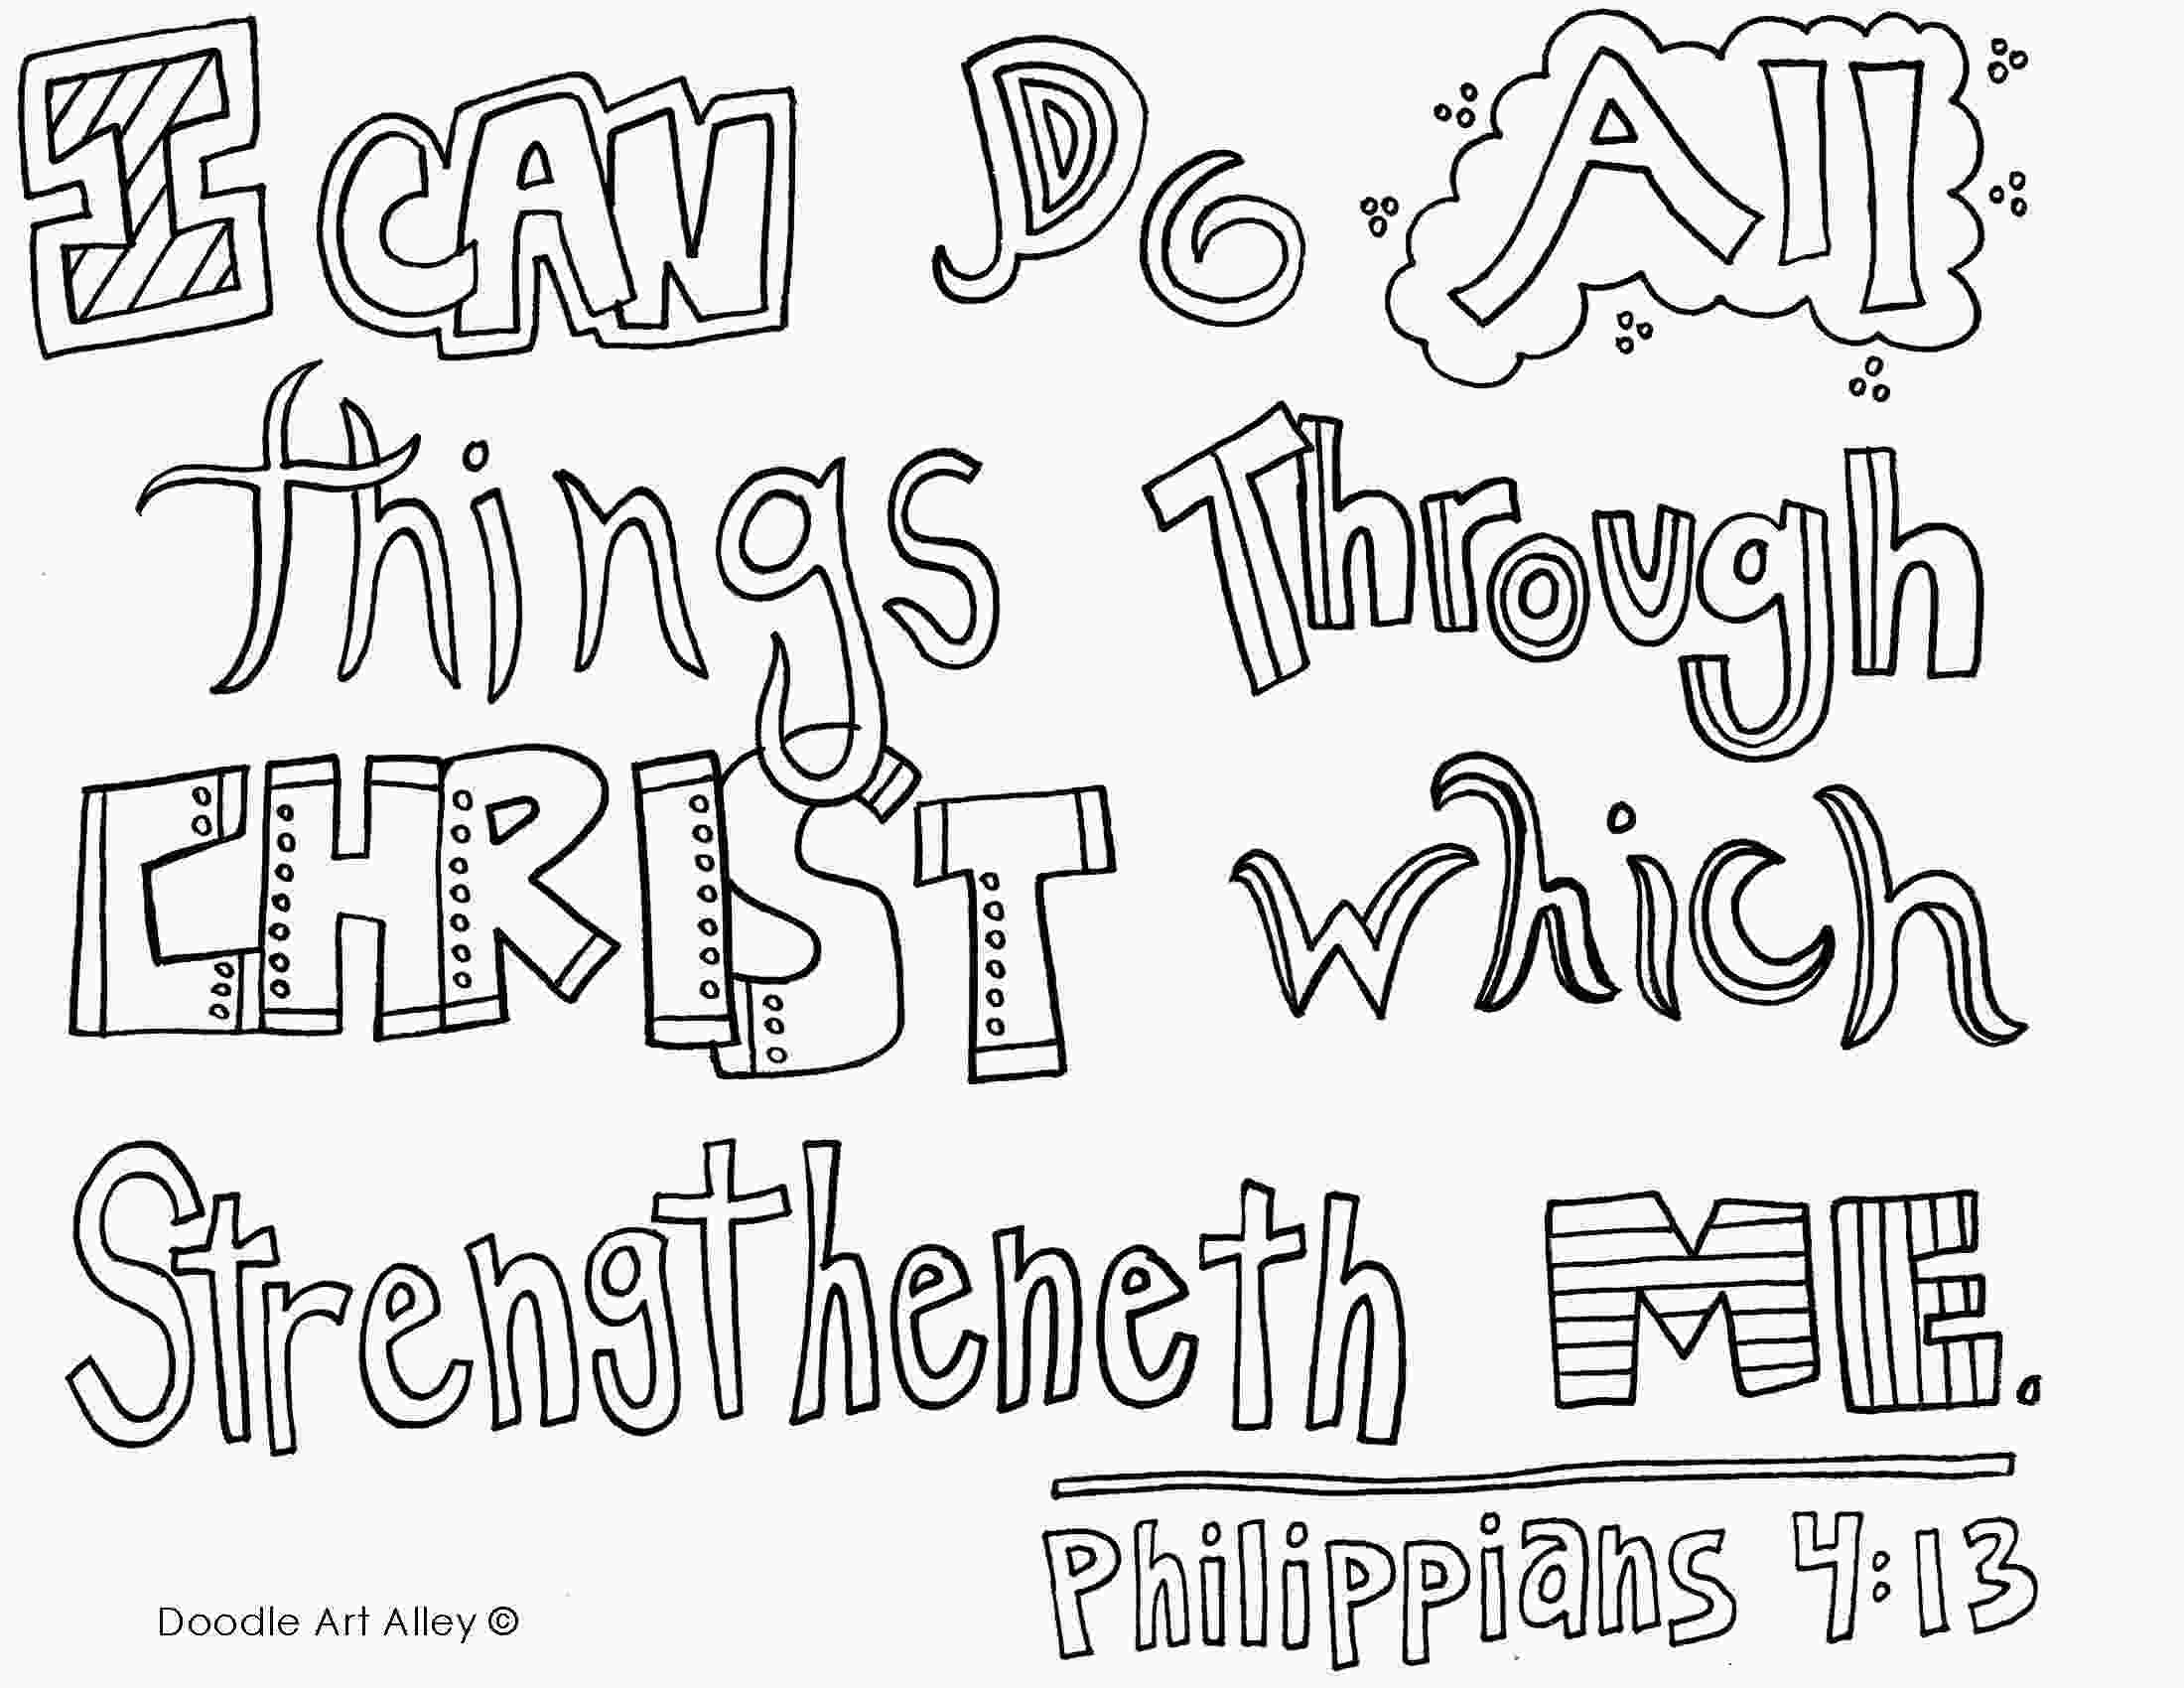 coloring sheet philippians 4 13 coloring page phil 413 coloring page doodle color amp draw bible